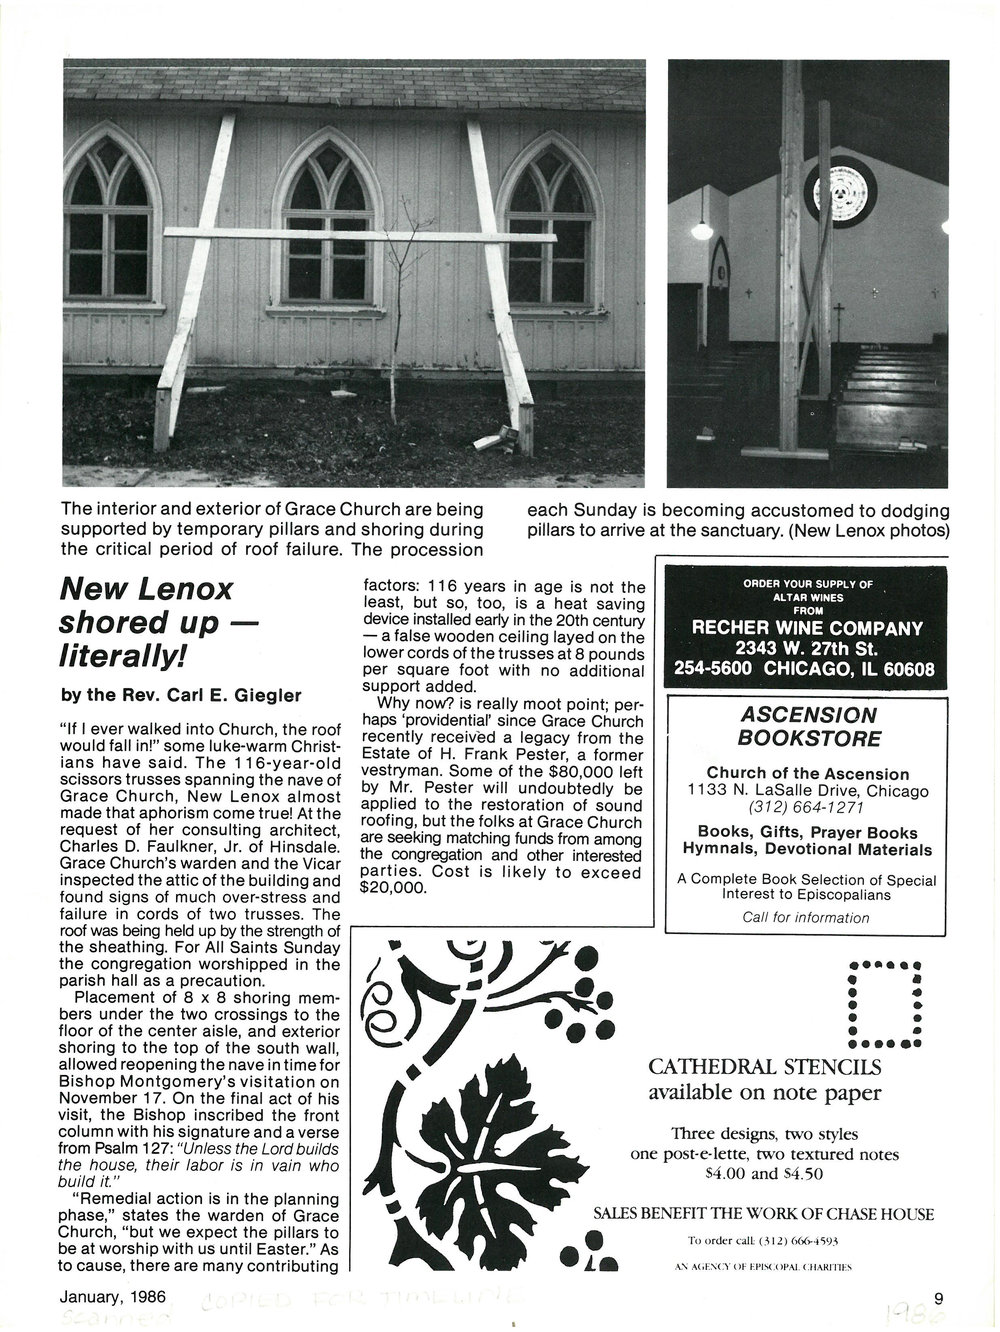 A page from an article in  The Advance , a magazine for the Episcopal Diocese of Chicago at the time, which details the work to keep the church standing up after major storm damage. January 1986.